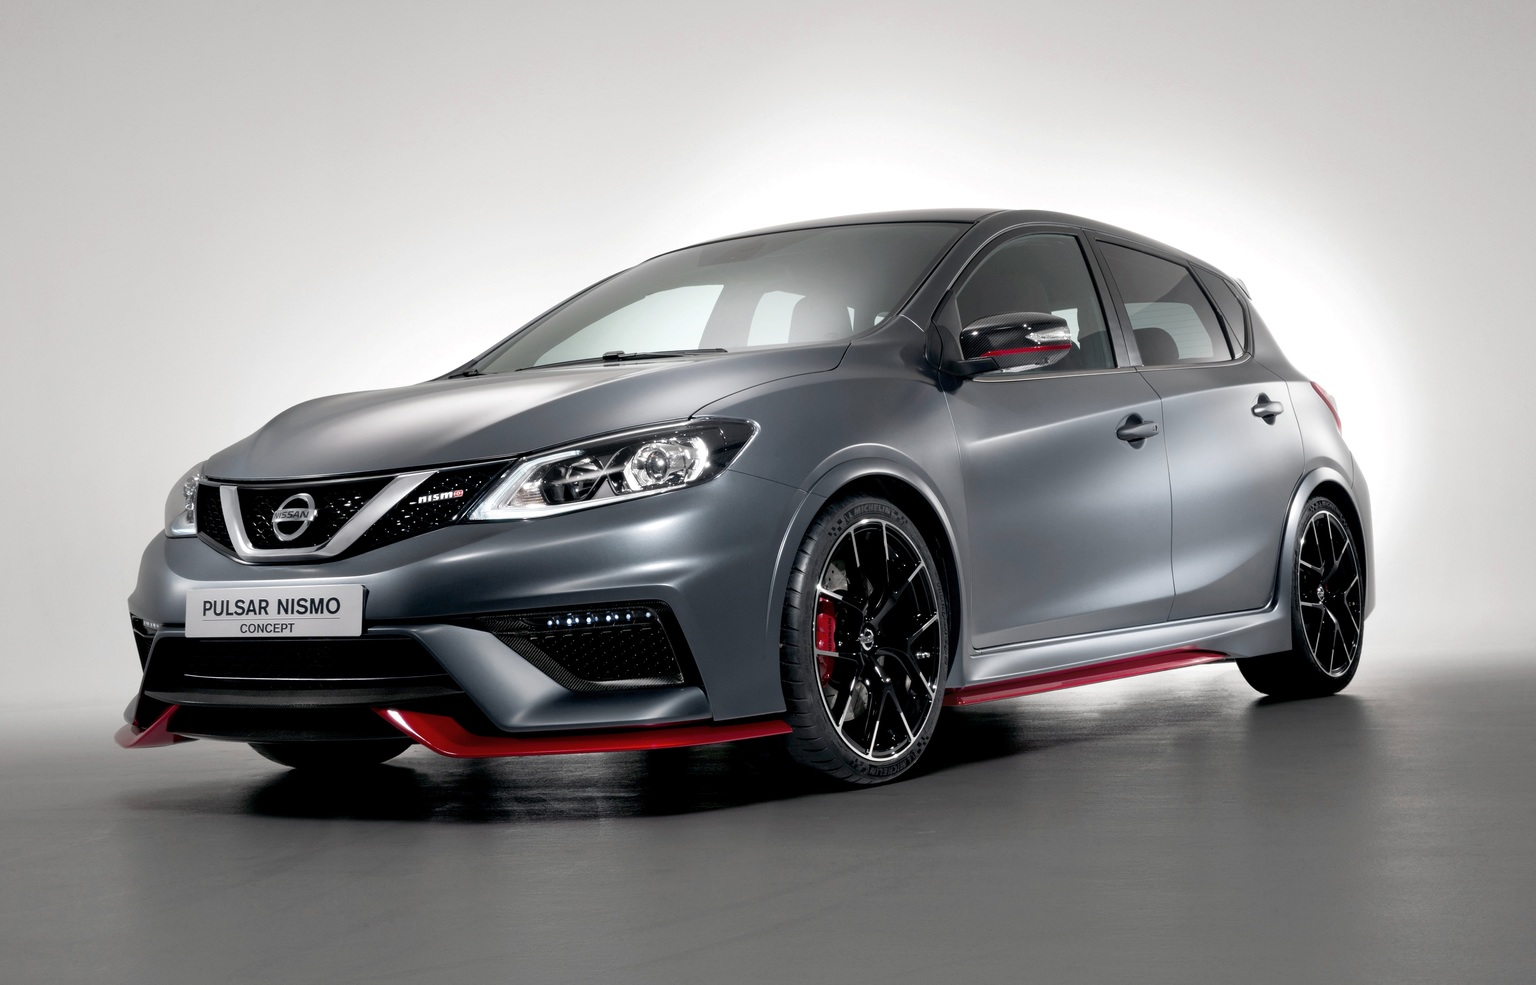 2014 nissan pulsar nismo. Black Bedroom Furniture Sets. Home Design Ideas